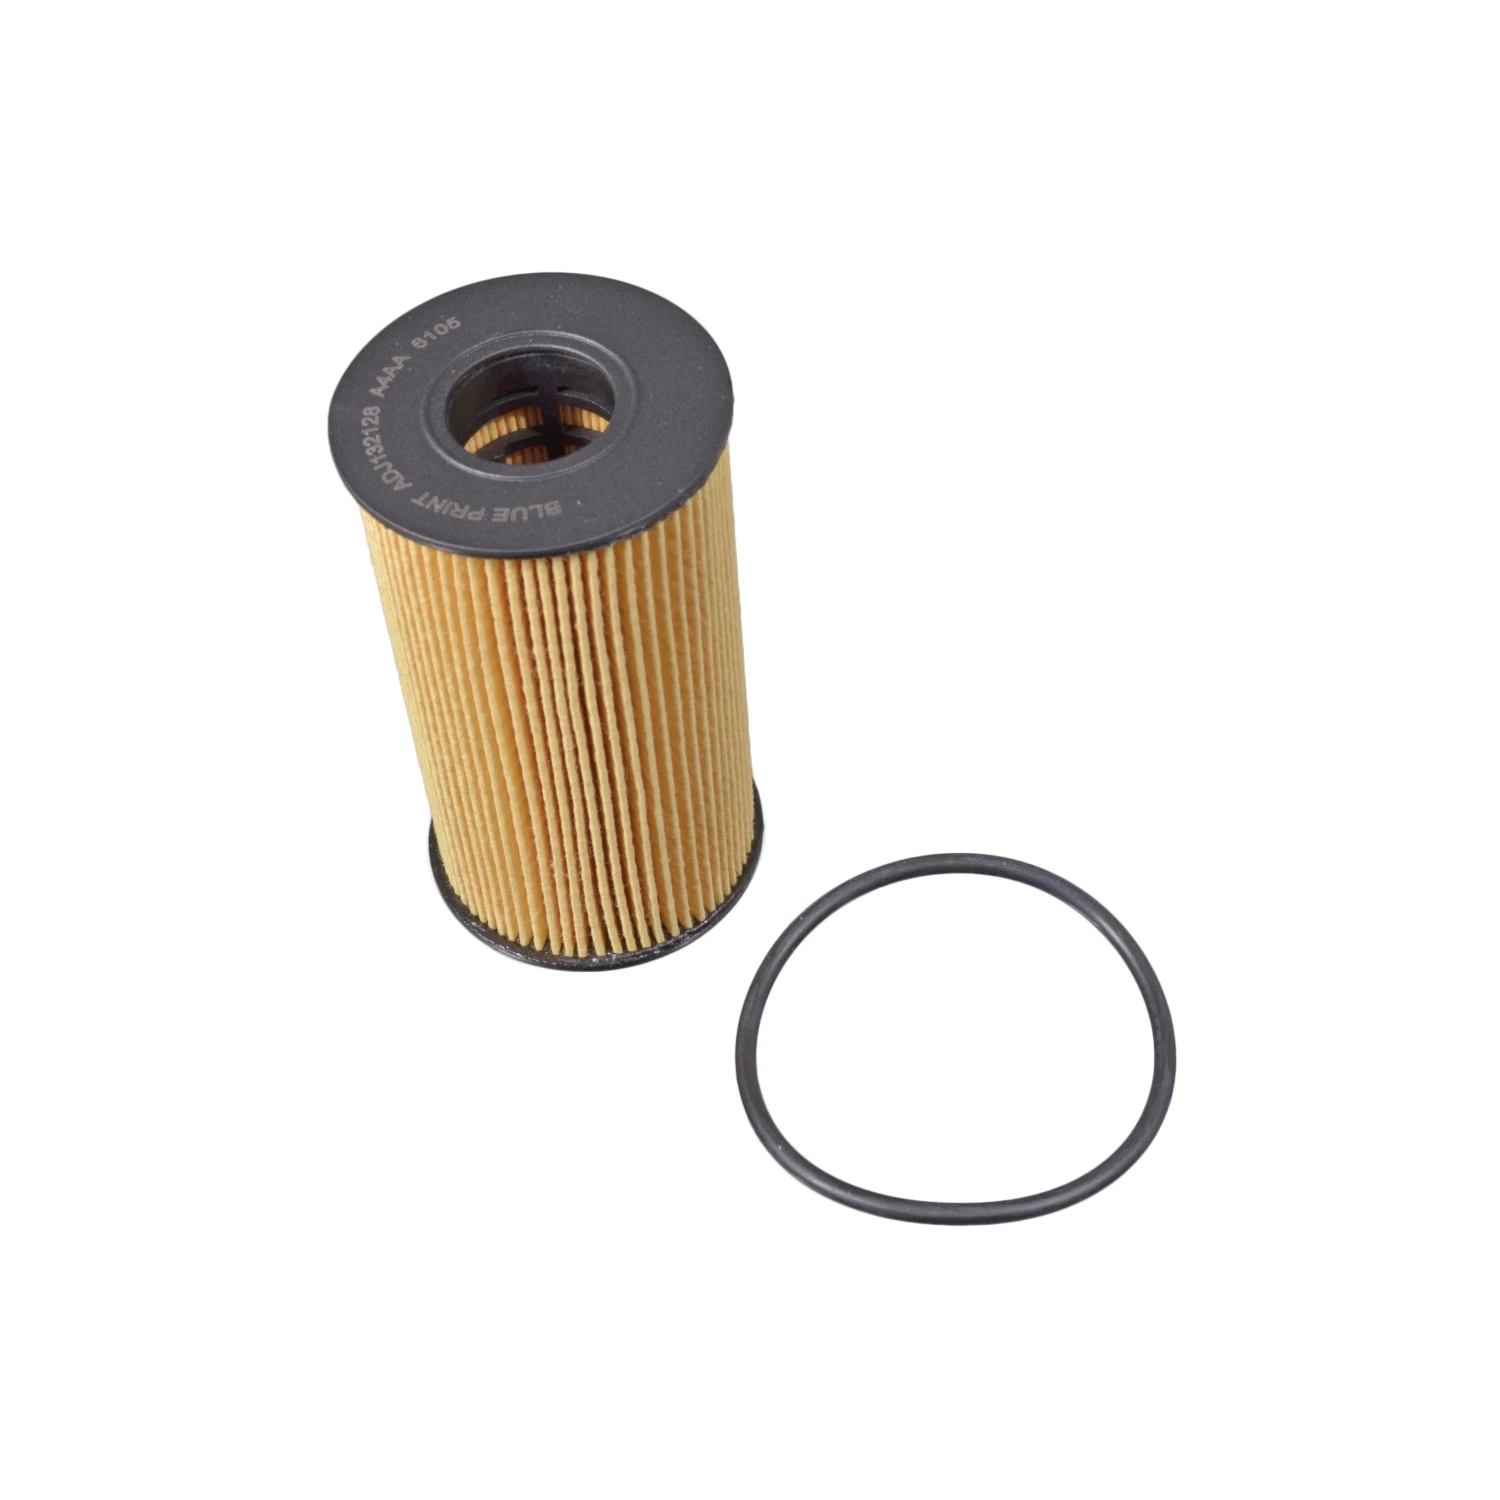 MAHLE Original OX 1138D Oil Filter Replacement Filter Oil Filter Engine Oil Filter